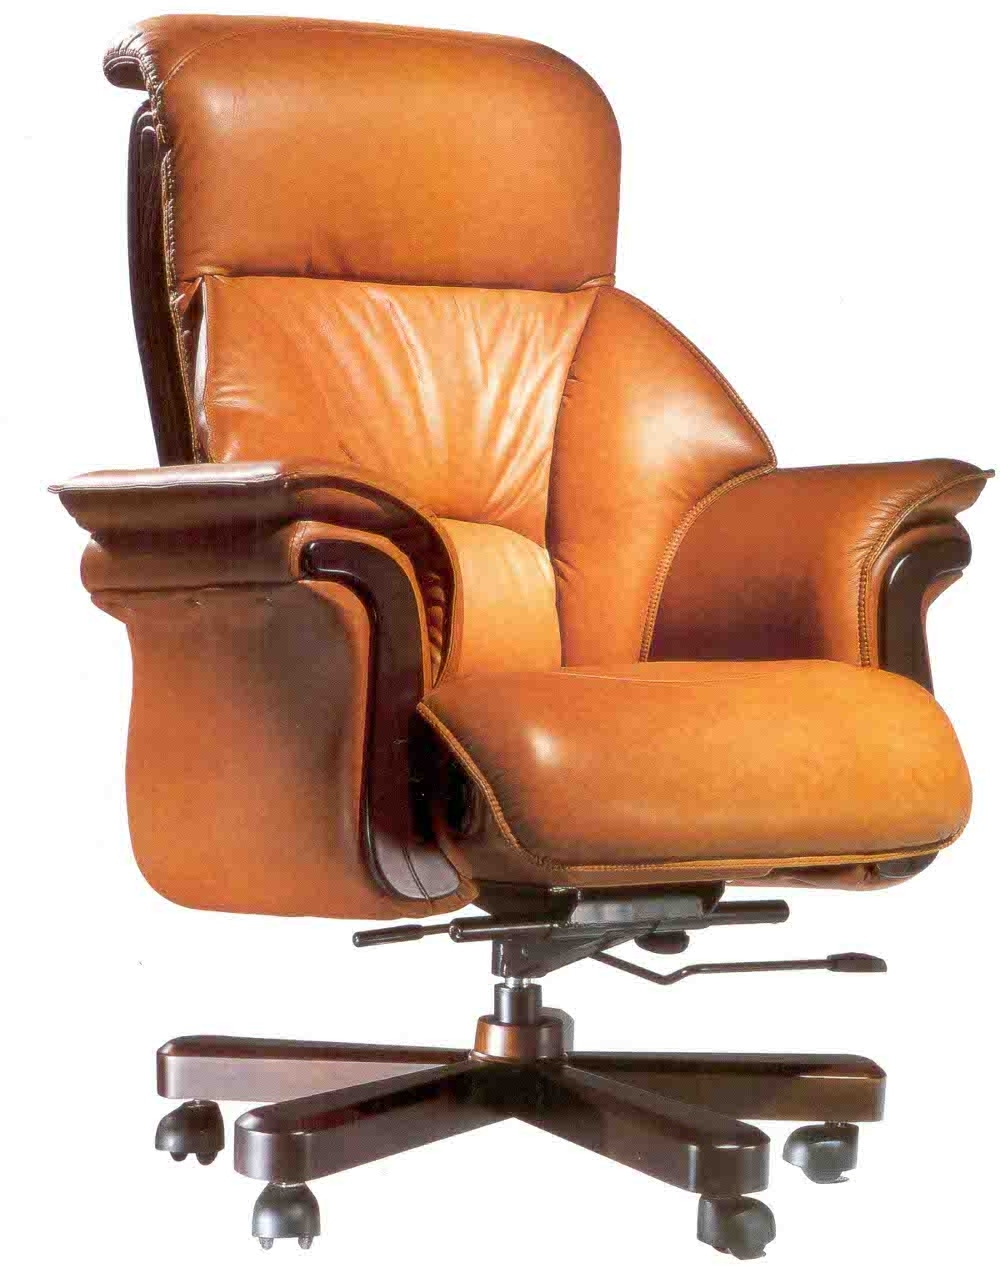 Preferred Chair Design Ideas (View 17 of 20)